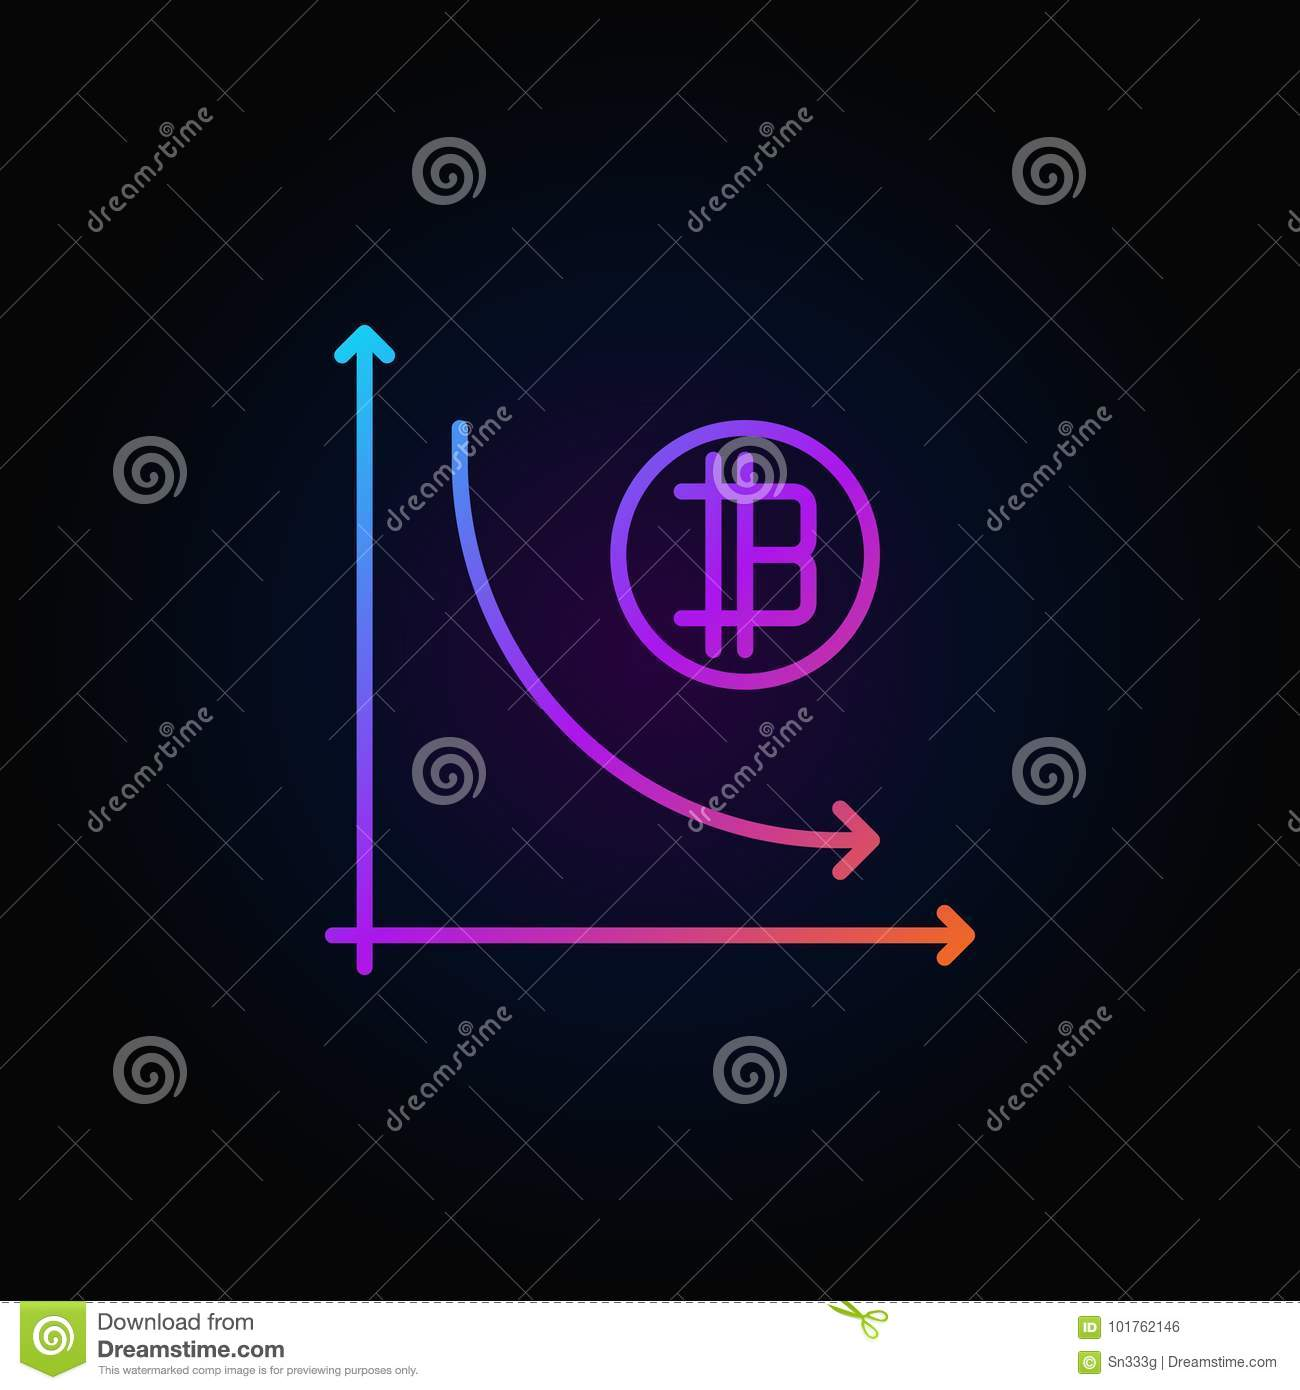 Cryptocurrency decline graph colorful icon